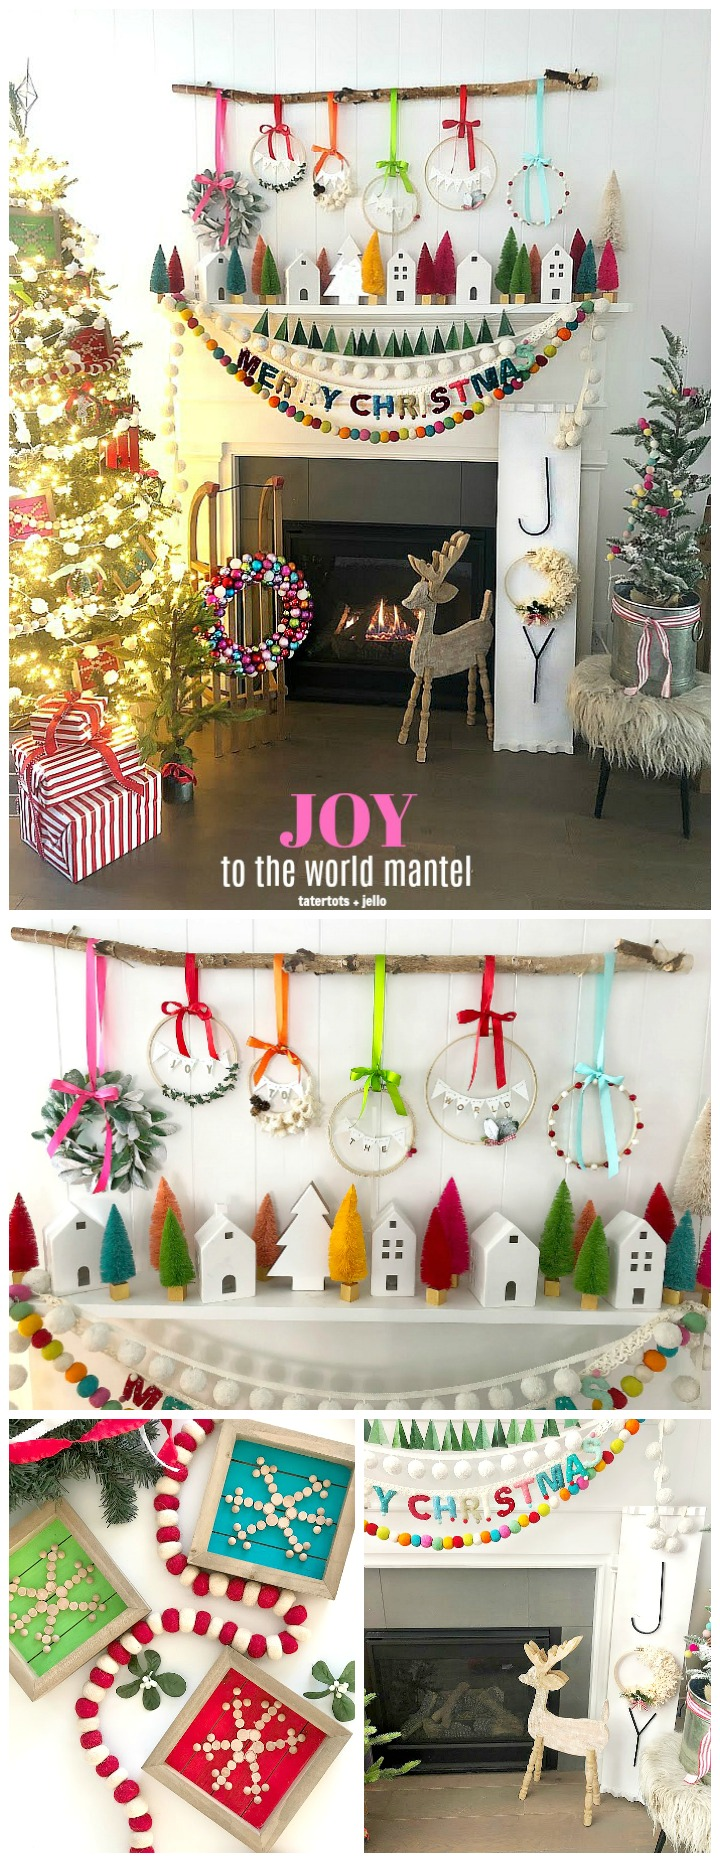 Joy to the World mantel - DIY Joy sign, embroidery hoop wreaths and DIY scandinavian snowflake ornaments.